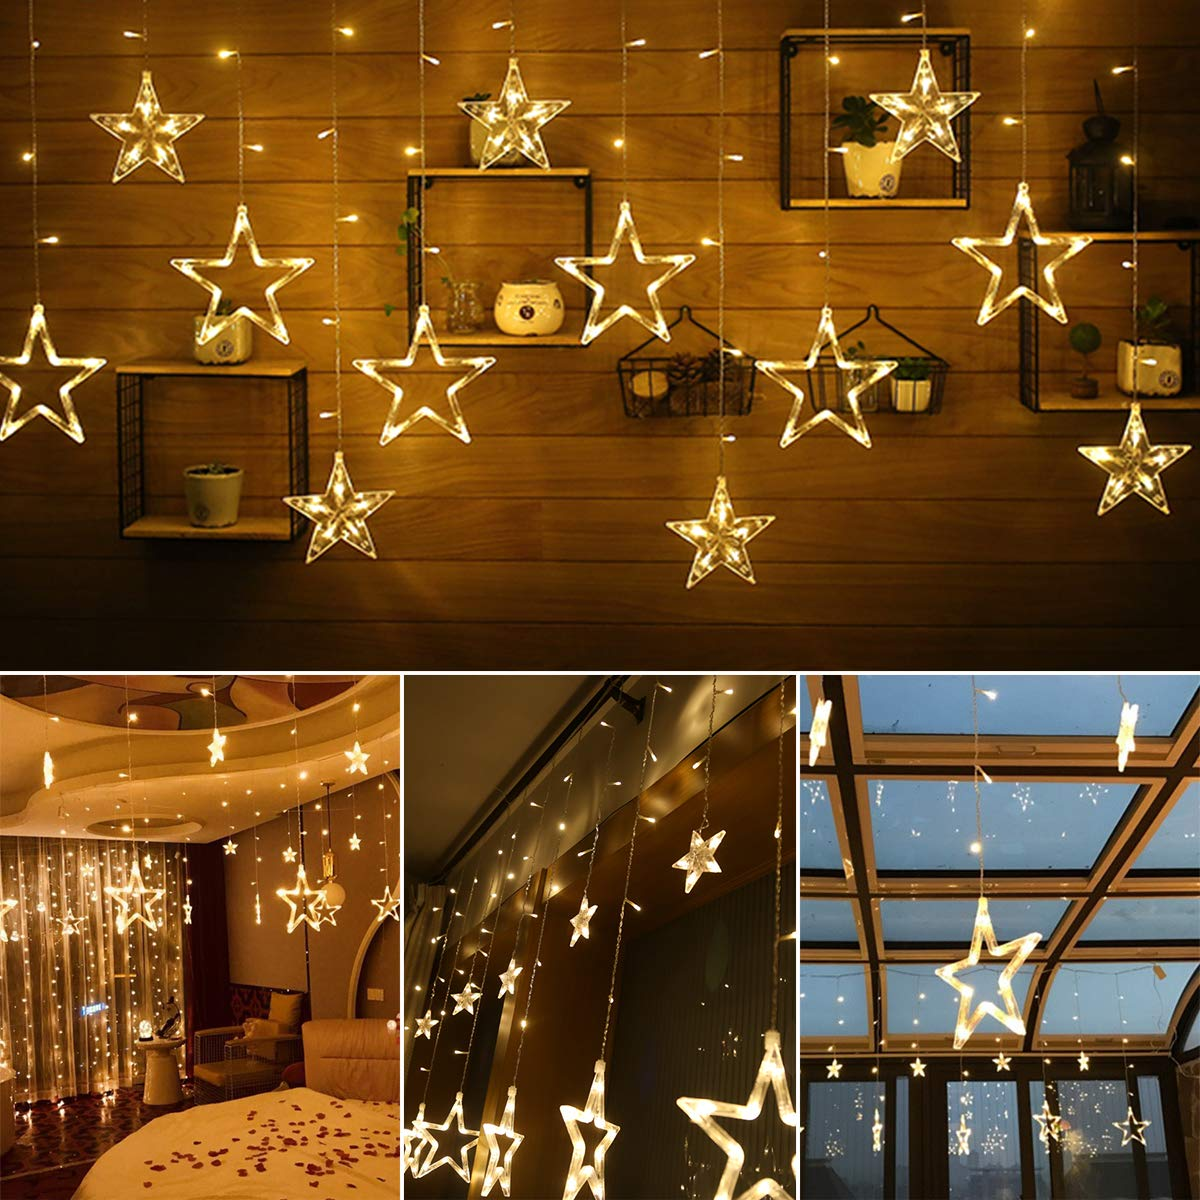 ALOVECO Star Curtain Lights with Remote, 12 Stars 138 LEDs Window Curtain String Lights Waterproof with 8 Flashing Modes Decoration for Christmas, Wedding, Party, Home, Patio Lawn, Warm White by ALOVECO (Image #5)